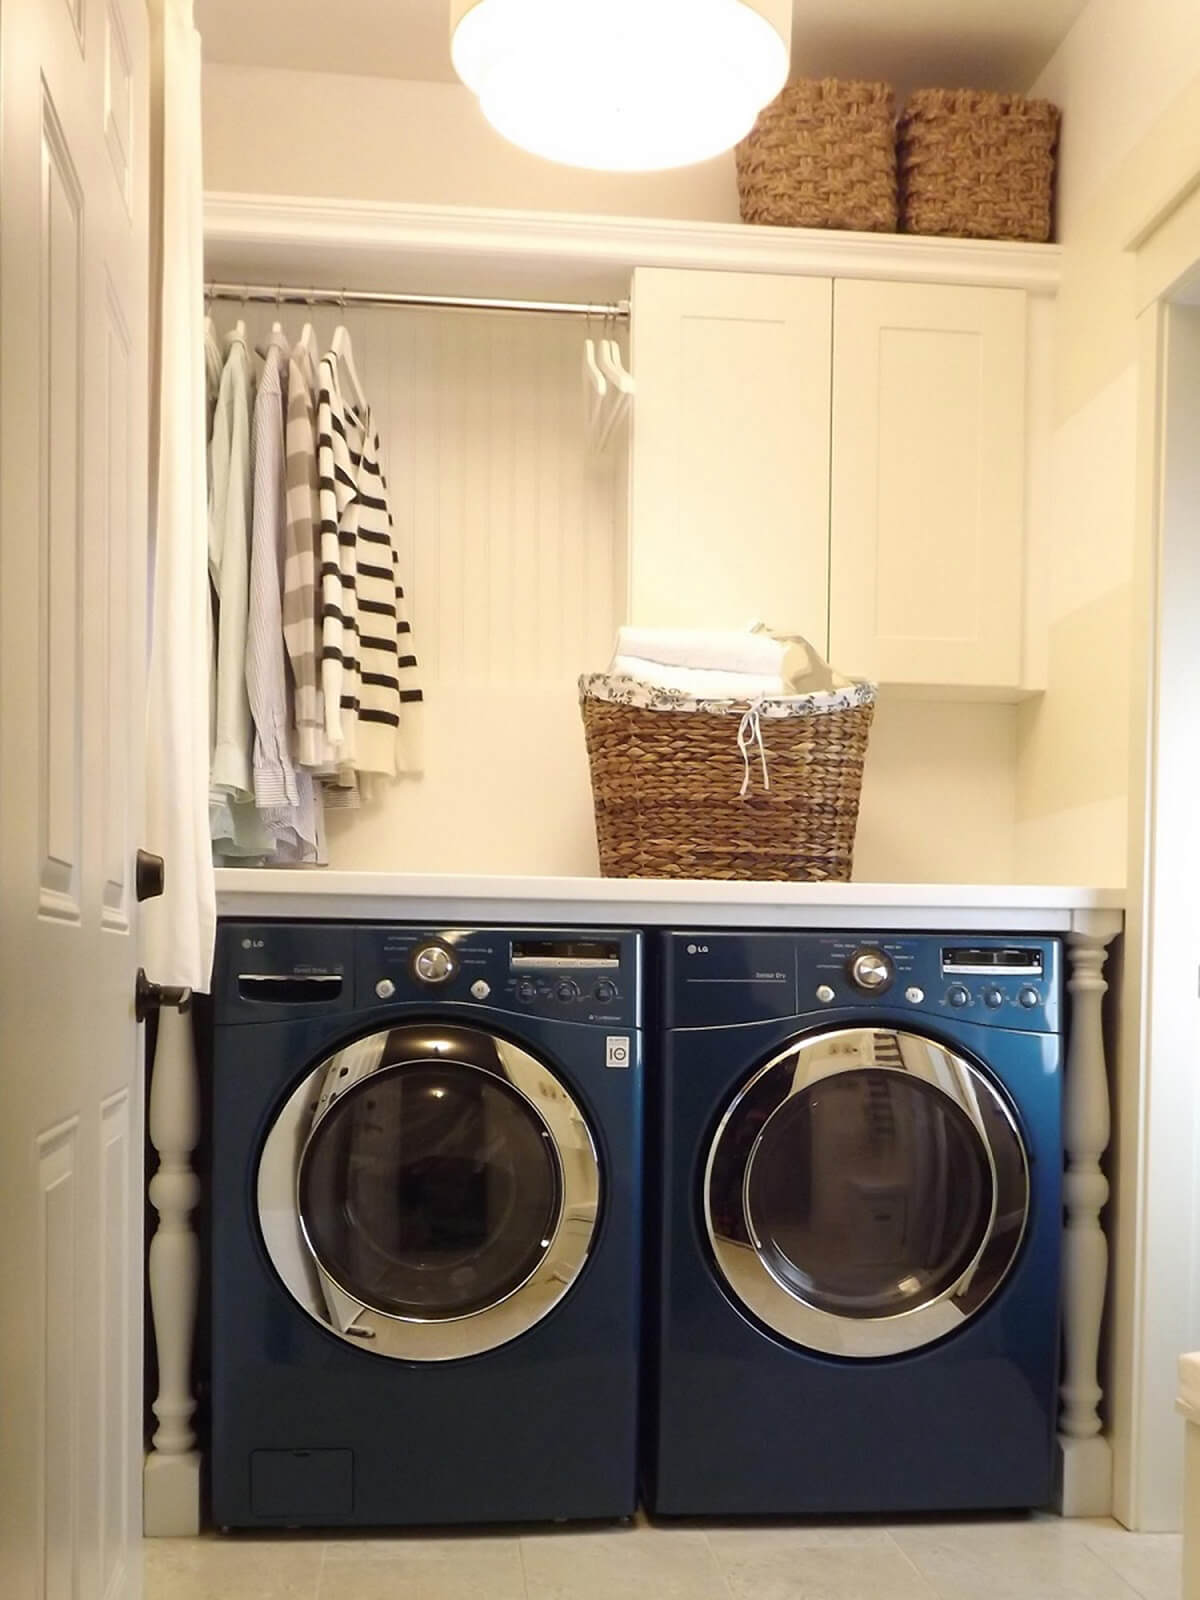 28 Best Small Laundry Room Design Ideas for 2020 on Laundry Room Decor Ideas  id=43128